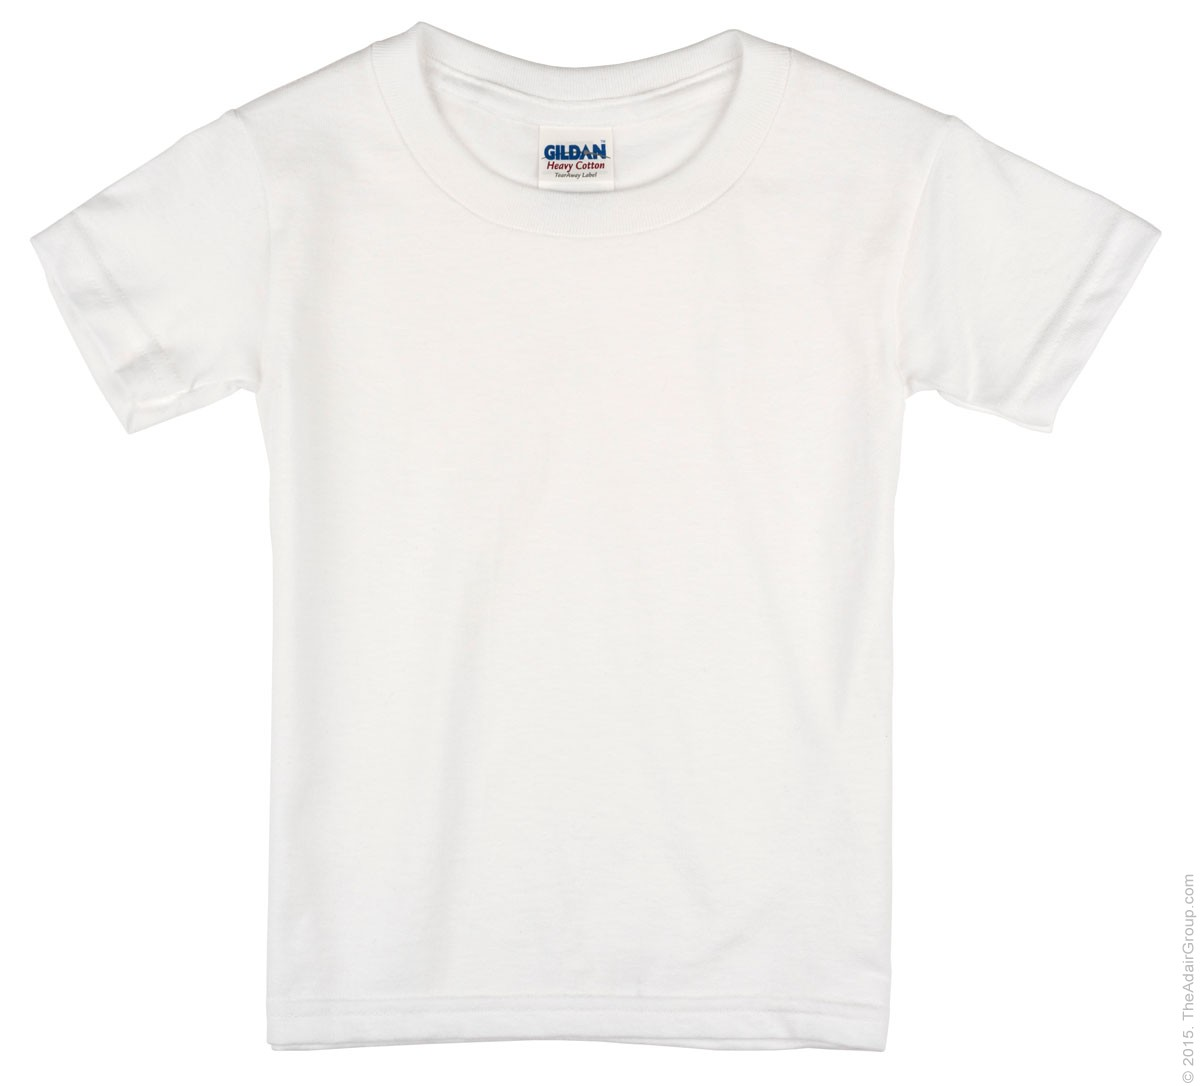 Plain white shirts cheapest t shirt jpg - White Toddler T Shirt